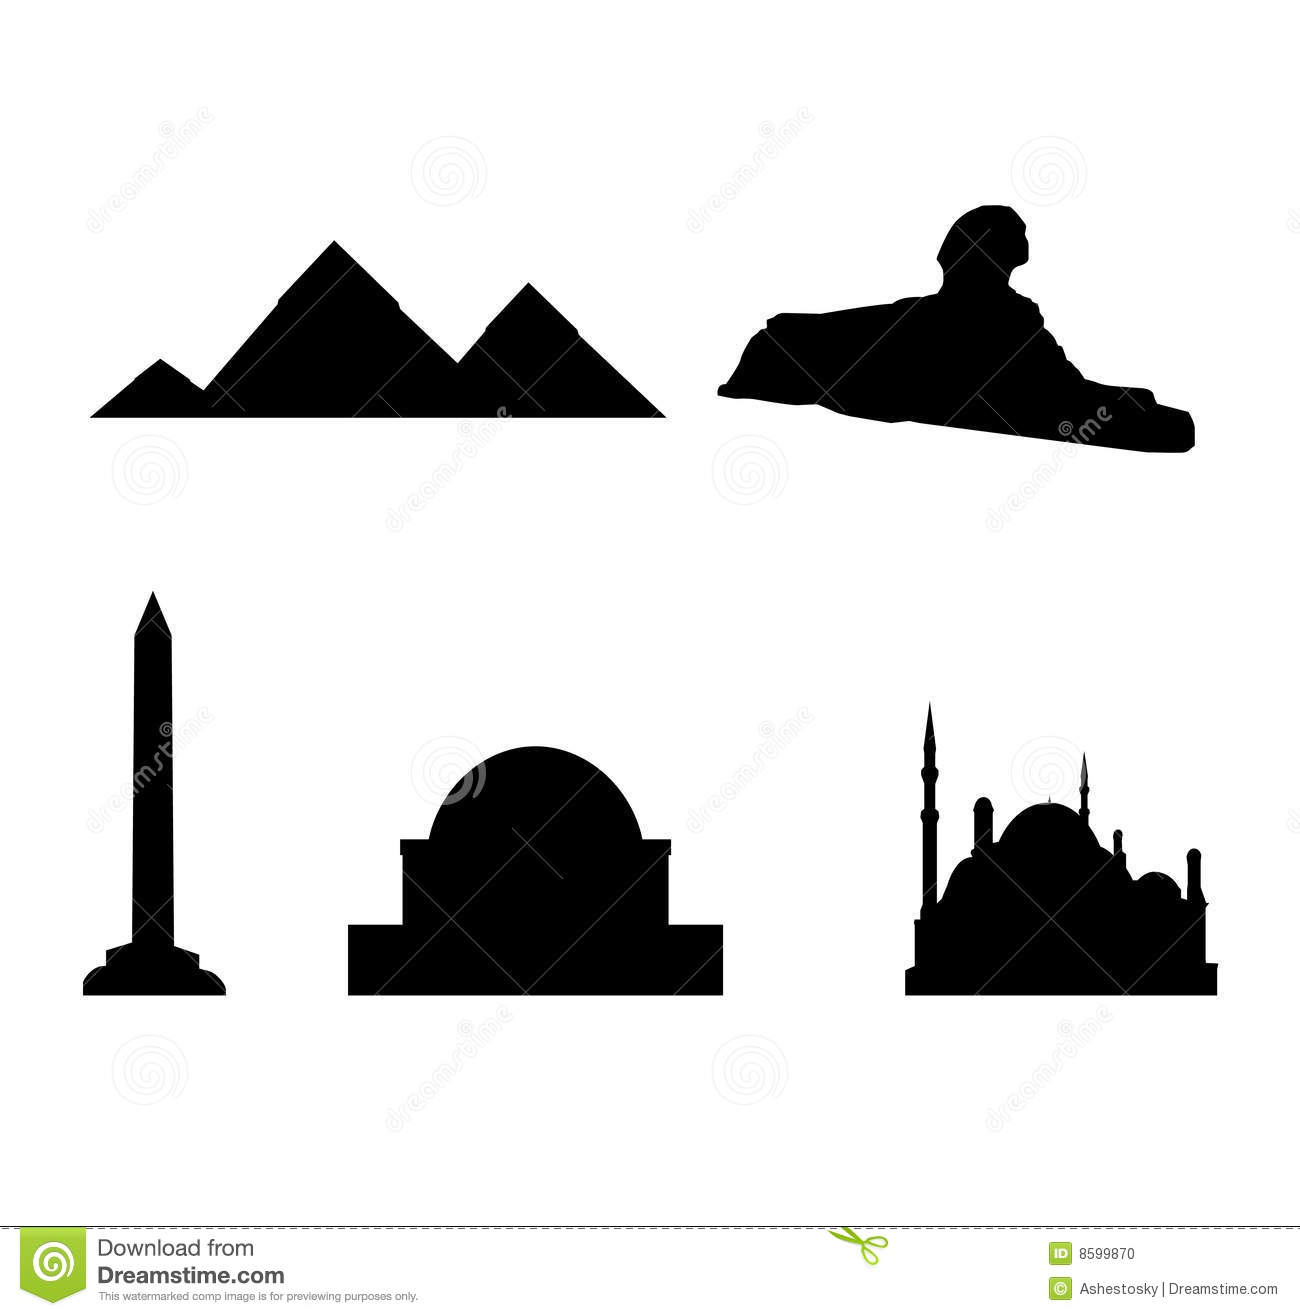 ... sphinx and the great pyramids, as well as mosques in cairo and obelisk